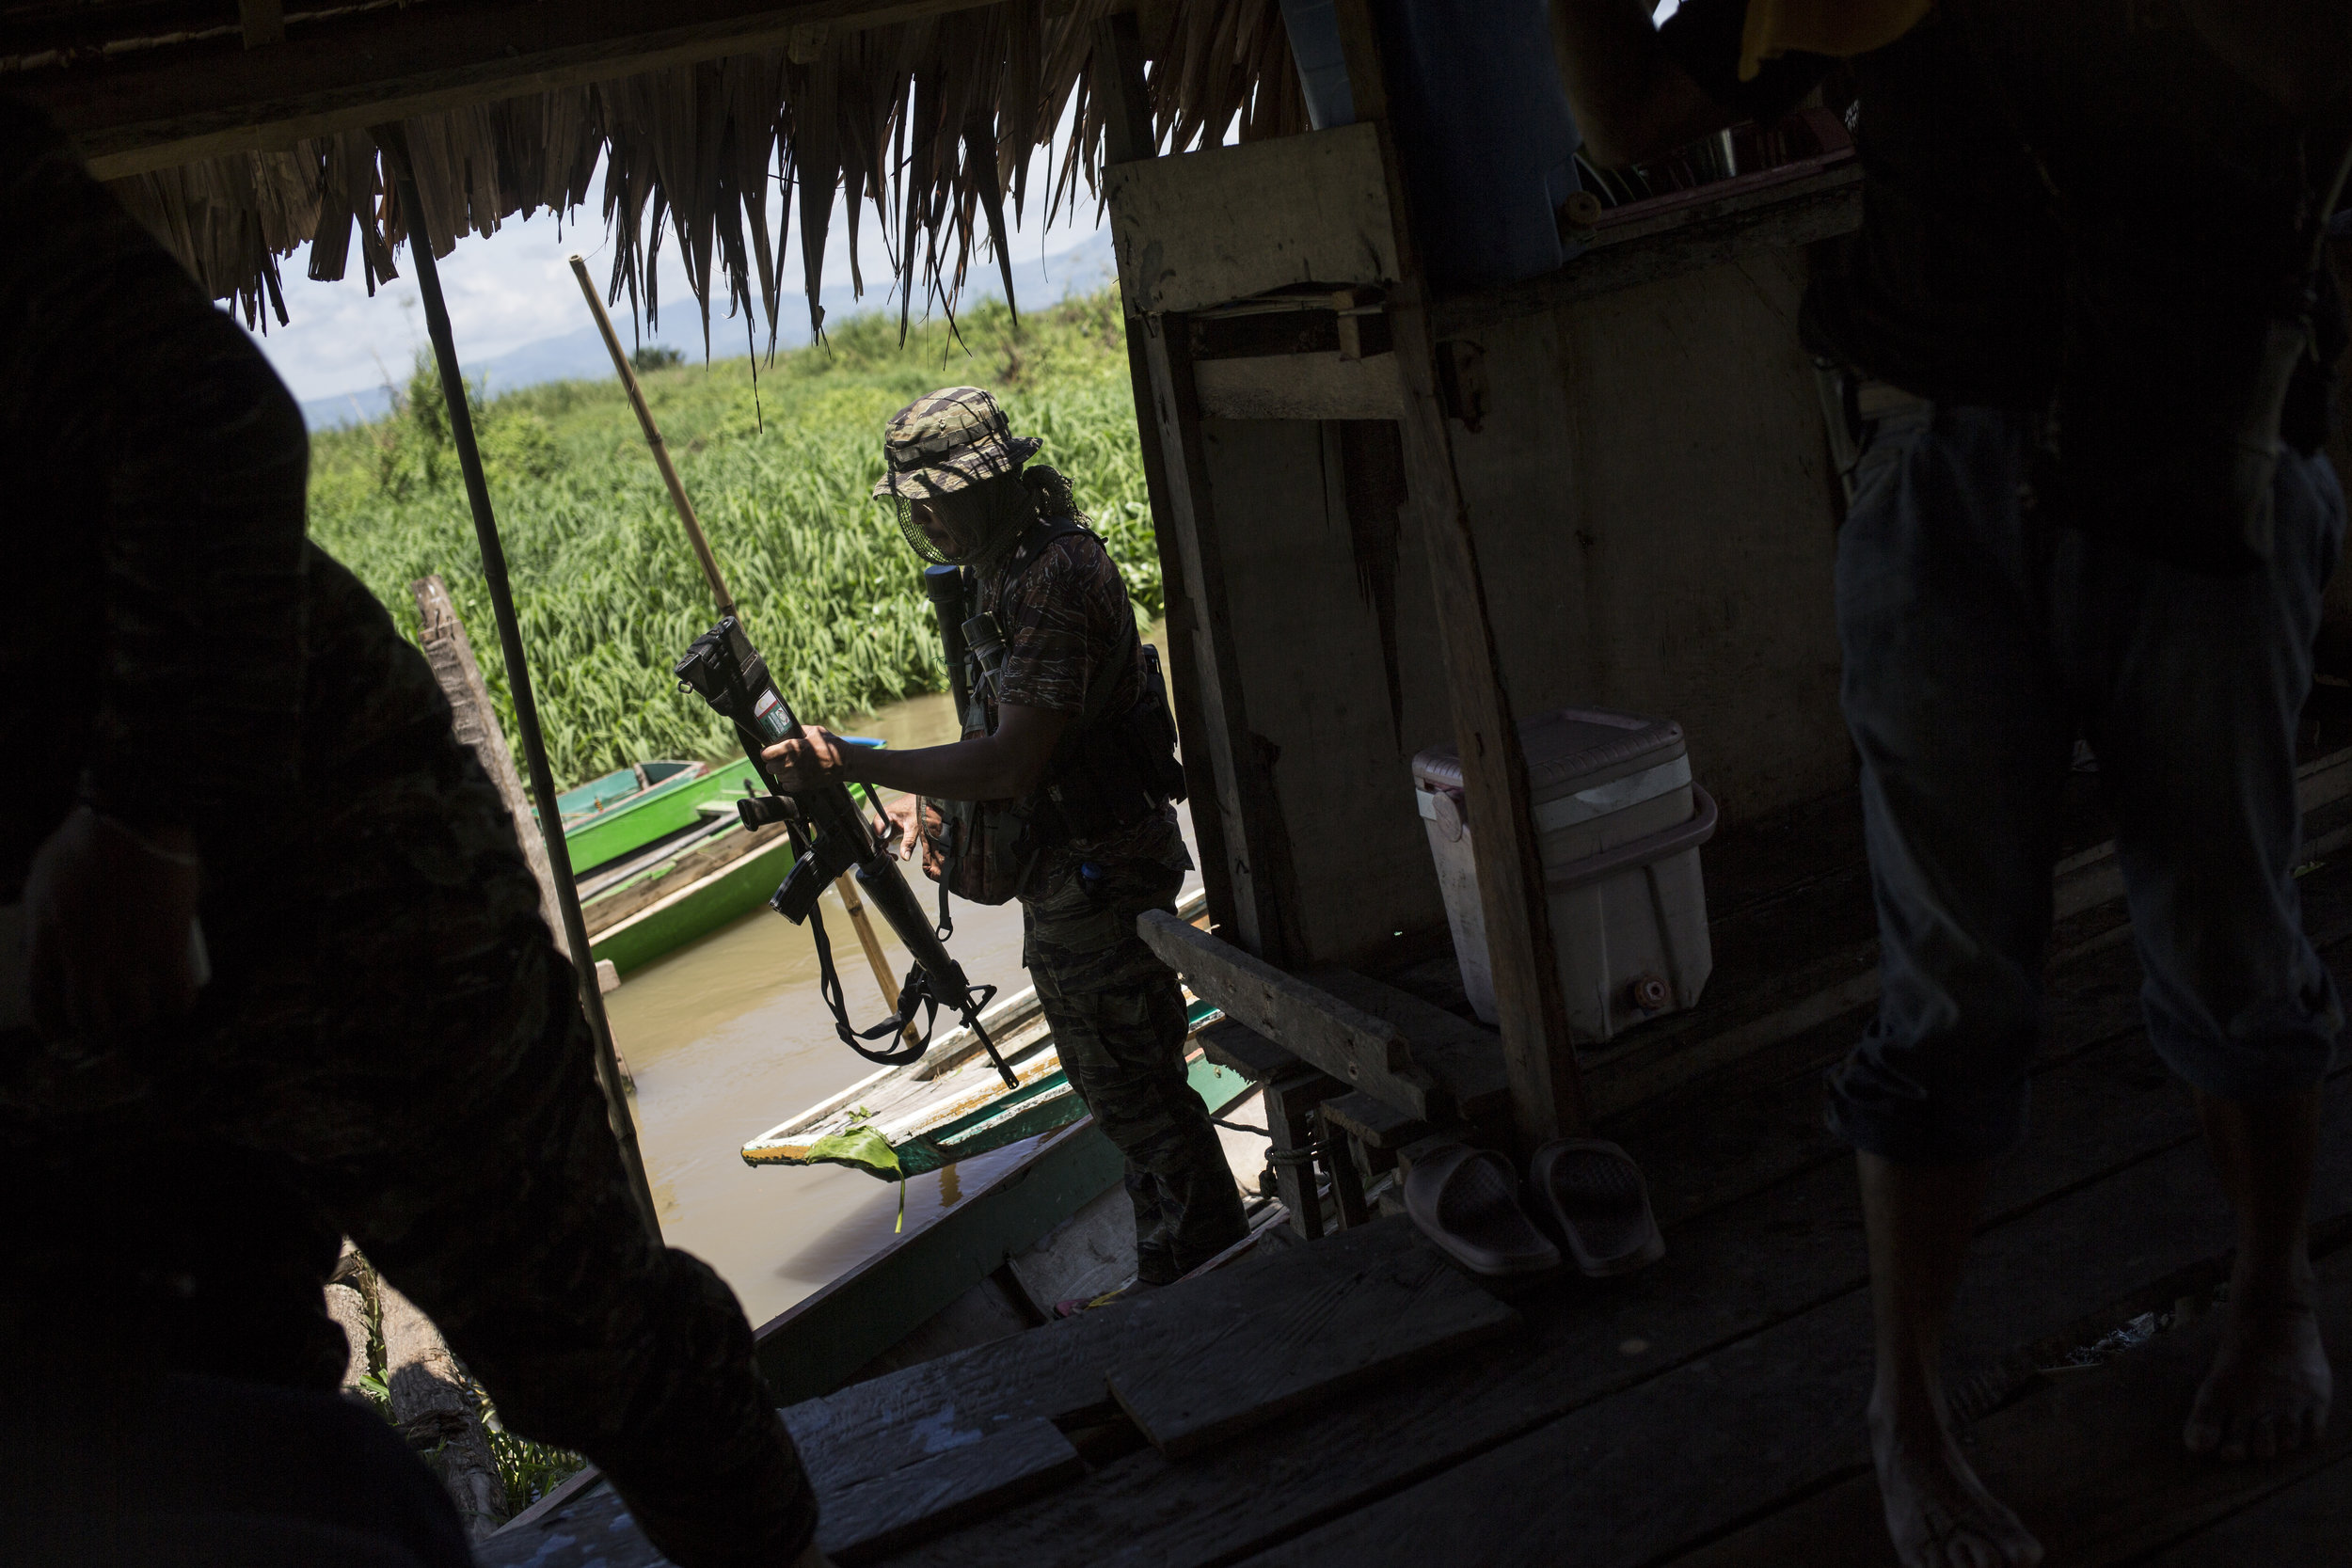 ISIS_In_The_Philippines (4 of 24).jpg